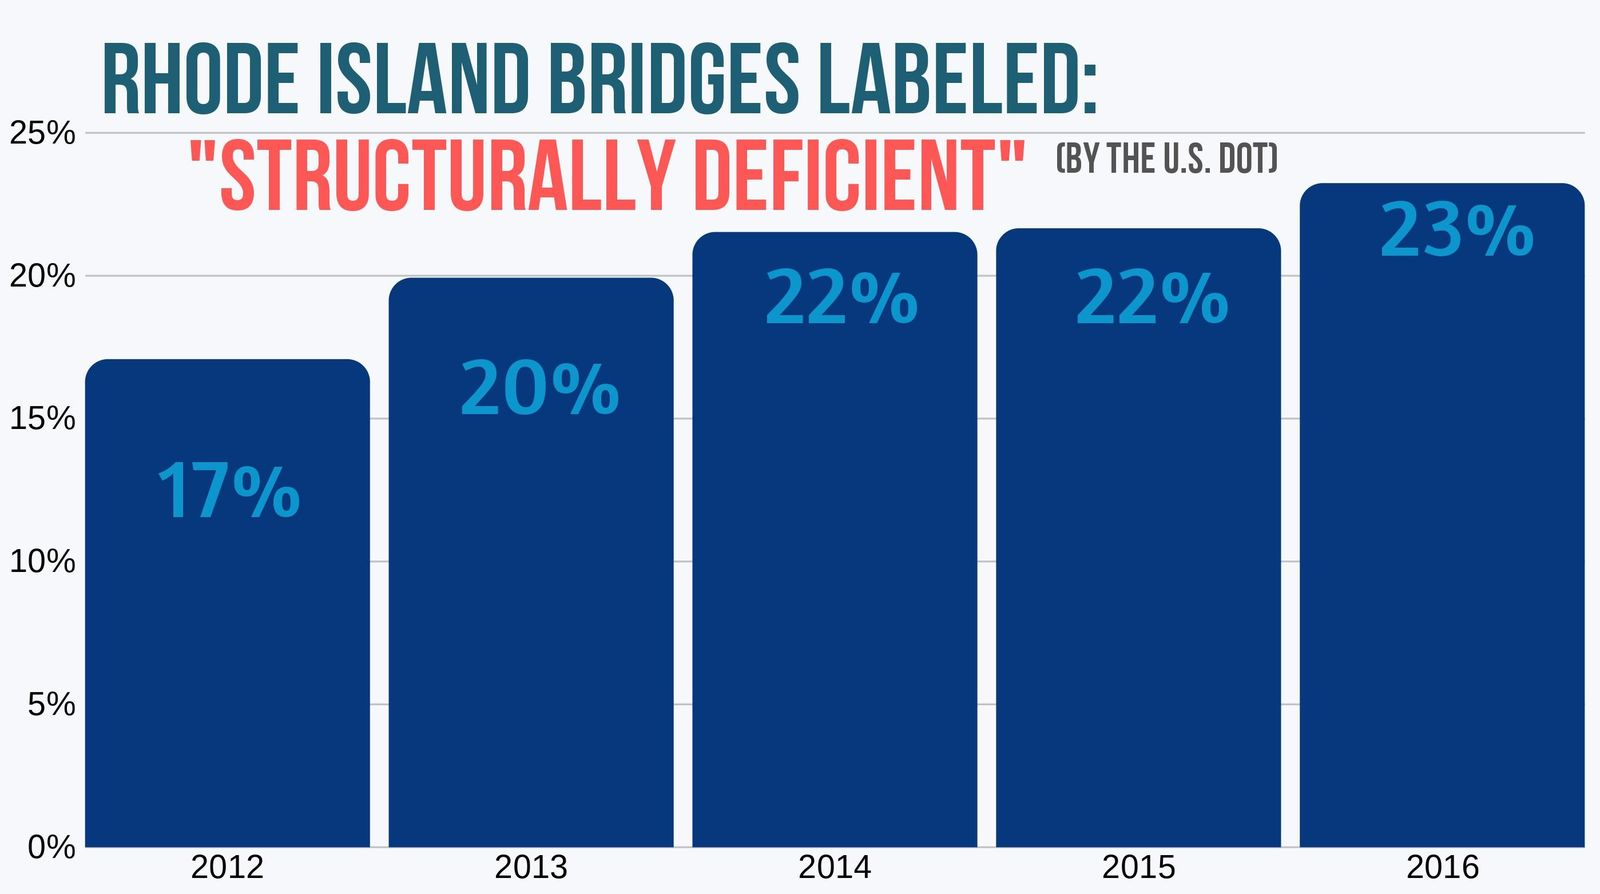 Rhode Island's Bridges Labeled Structurally Deficient by the US DOT 2012 to 2016